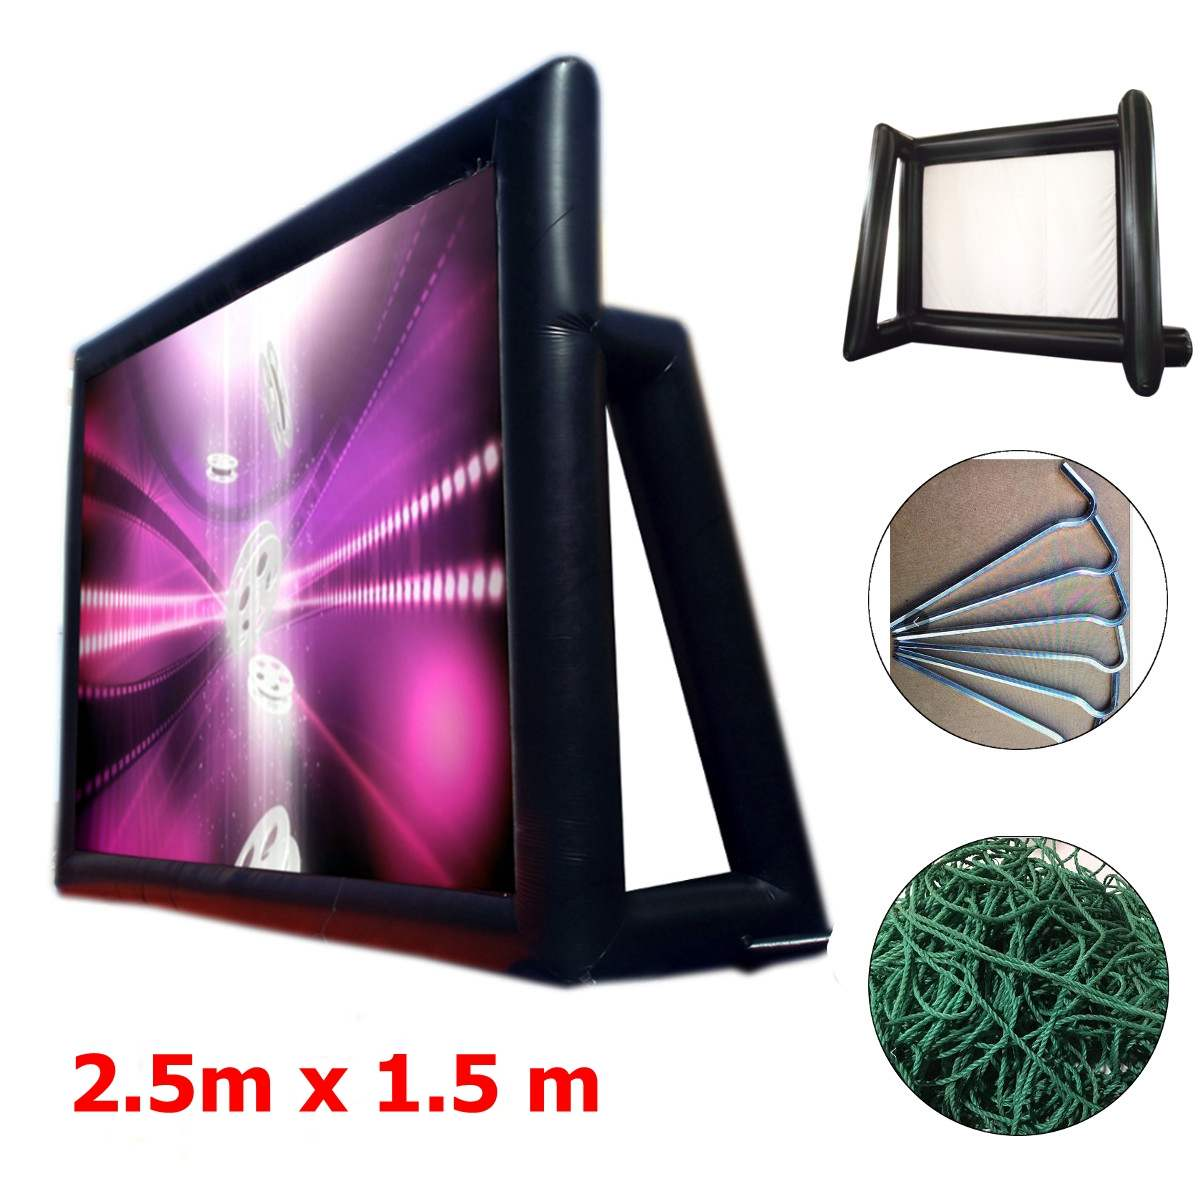 1.33mx0.75m 16:9 Inflatable Movie Screen Inflatable Rear Projection Movie Screen Inflatable Film Screen